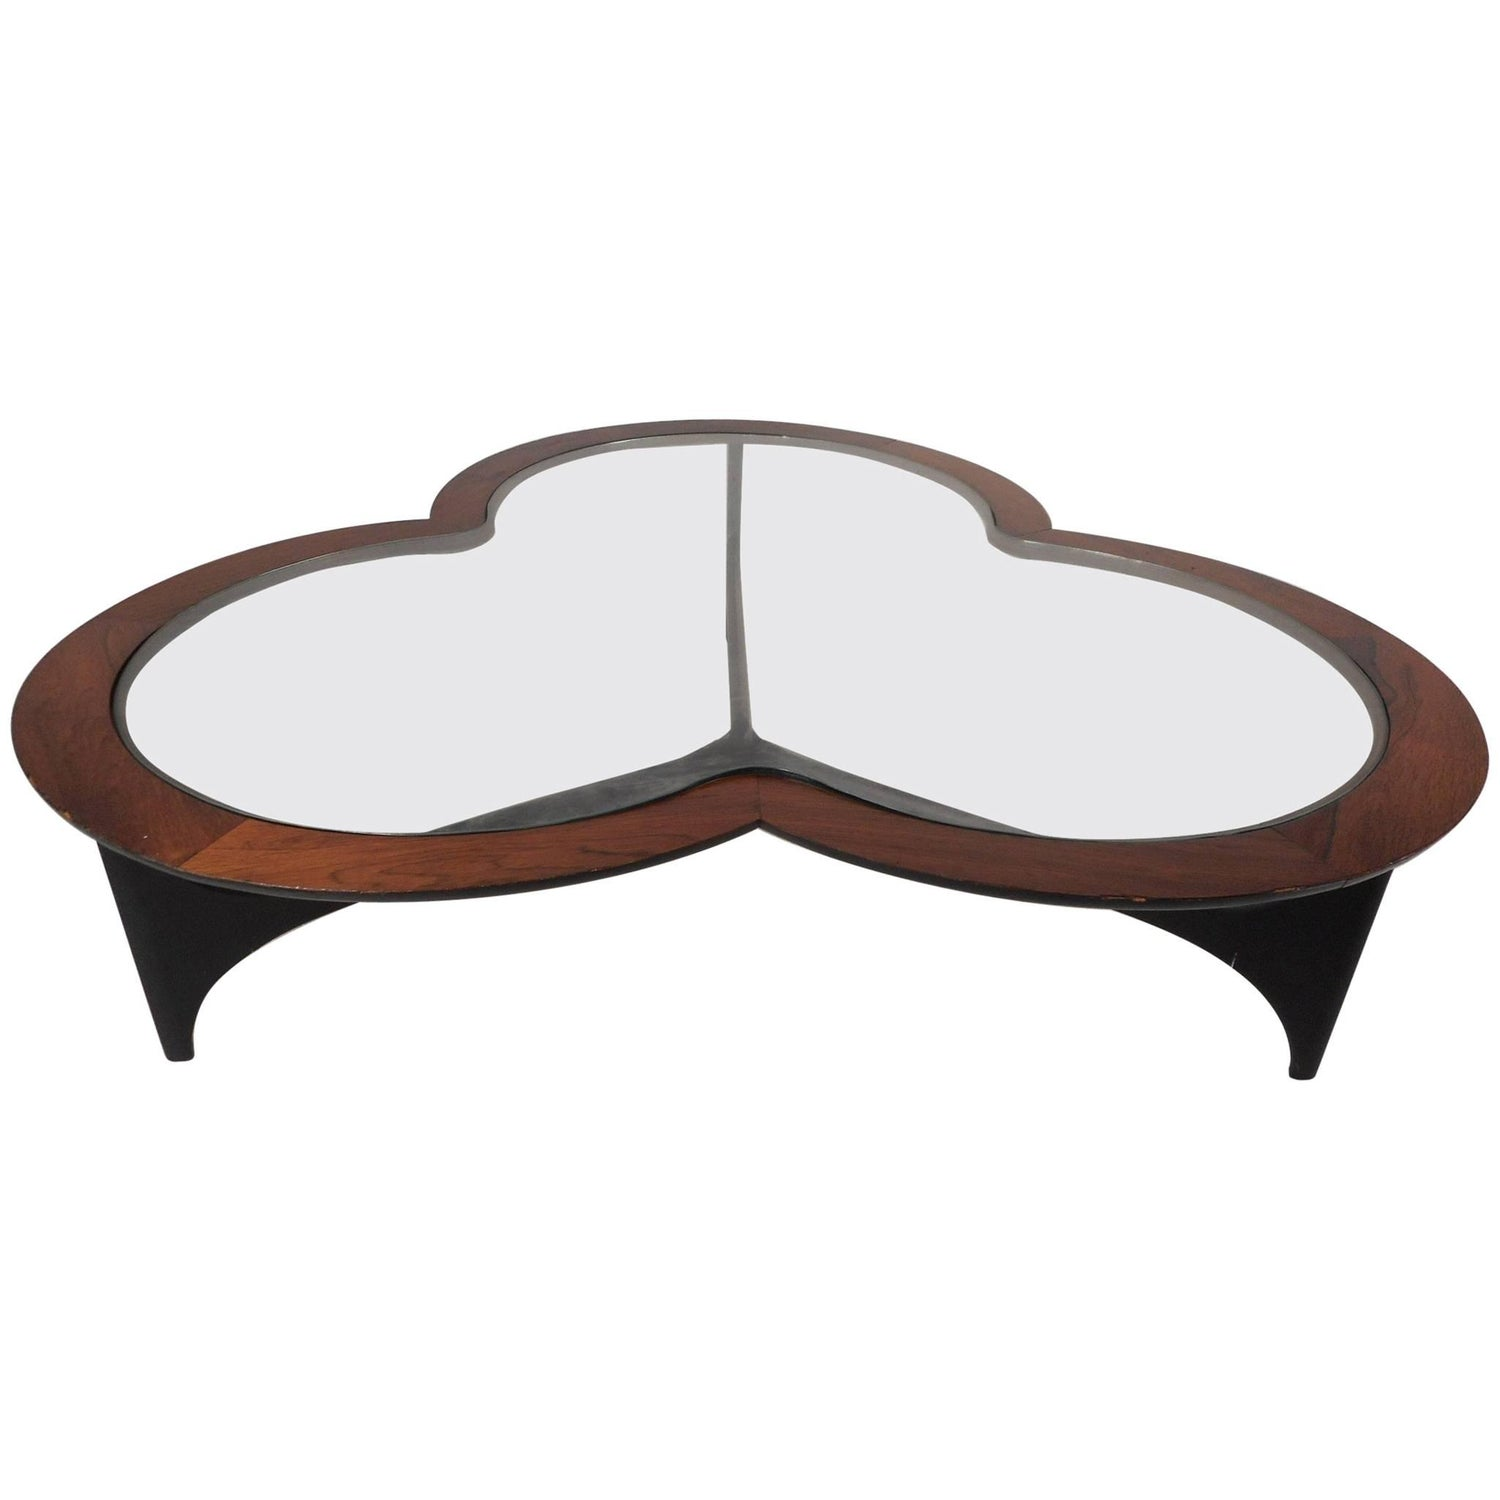 Vintage Lane Three Leaf Clover Mid Century Modern Coffee Table